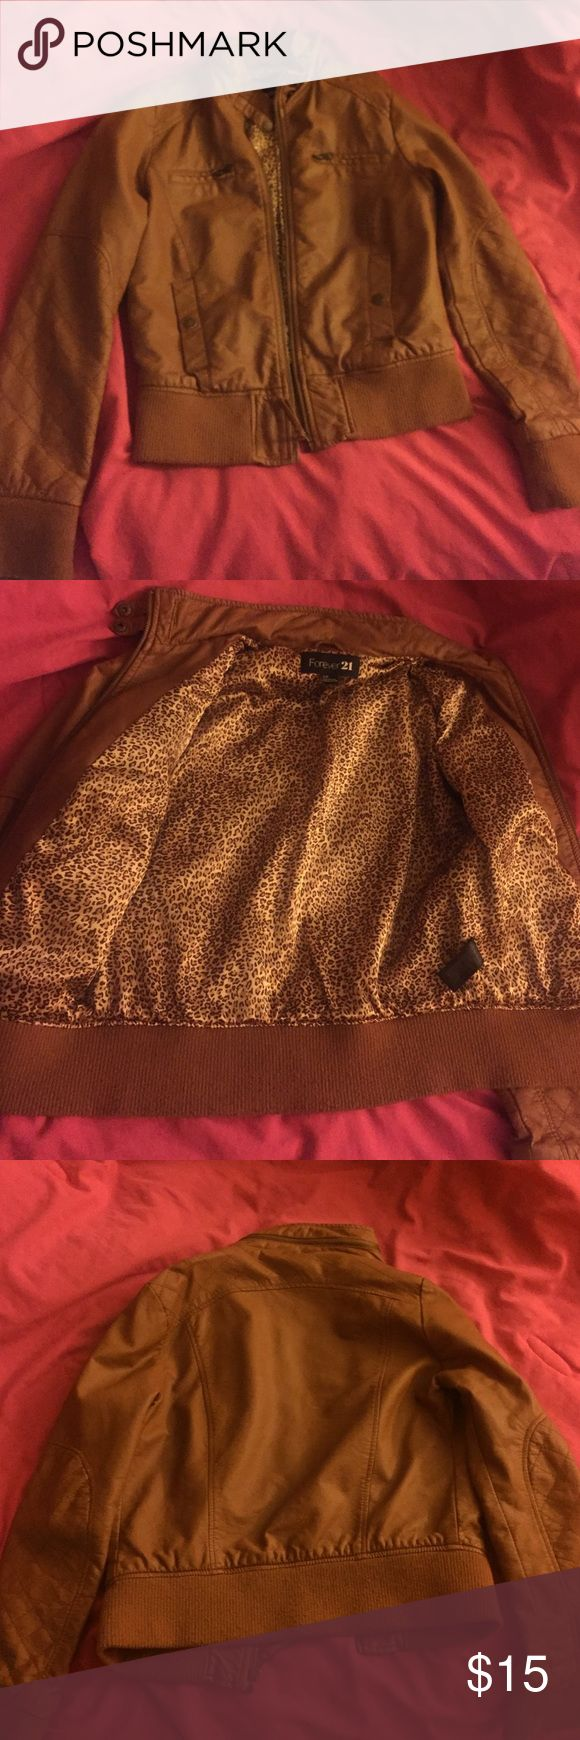 A camel leather jacket Faux leather jacket with a satin cheetah lining Forever 21 Jackets & Coats Puffers